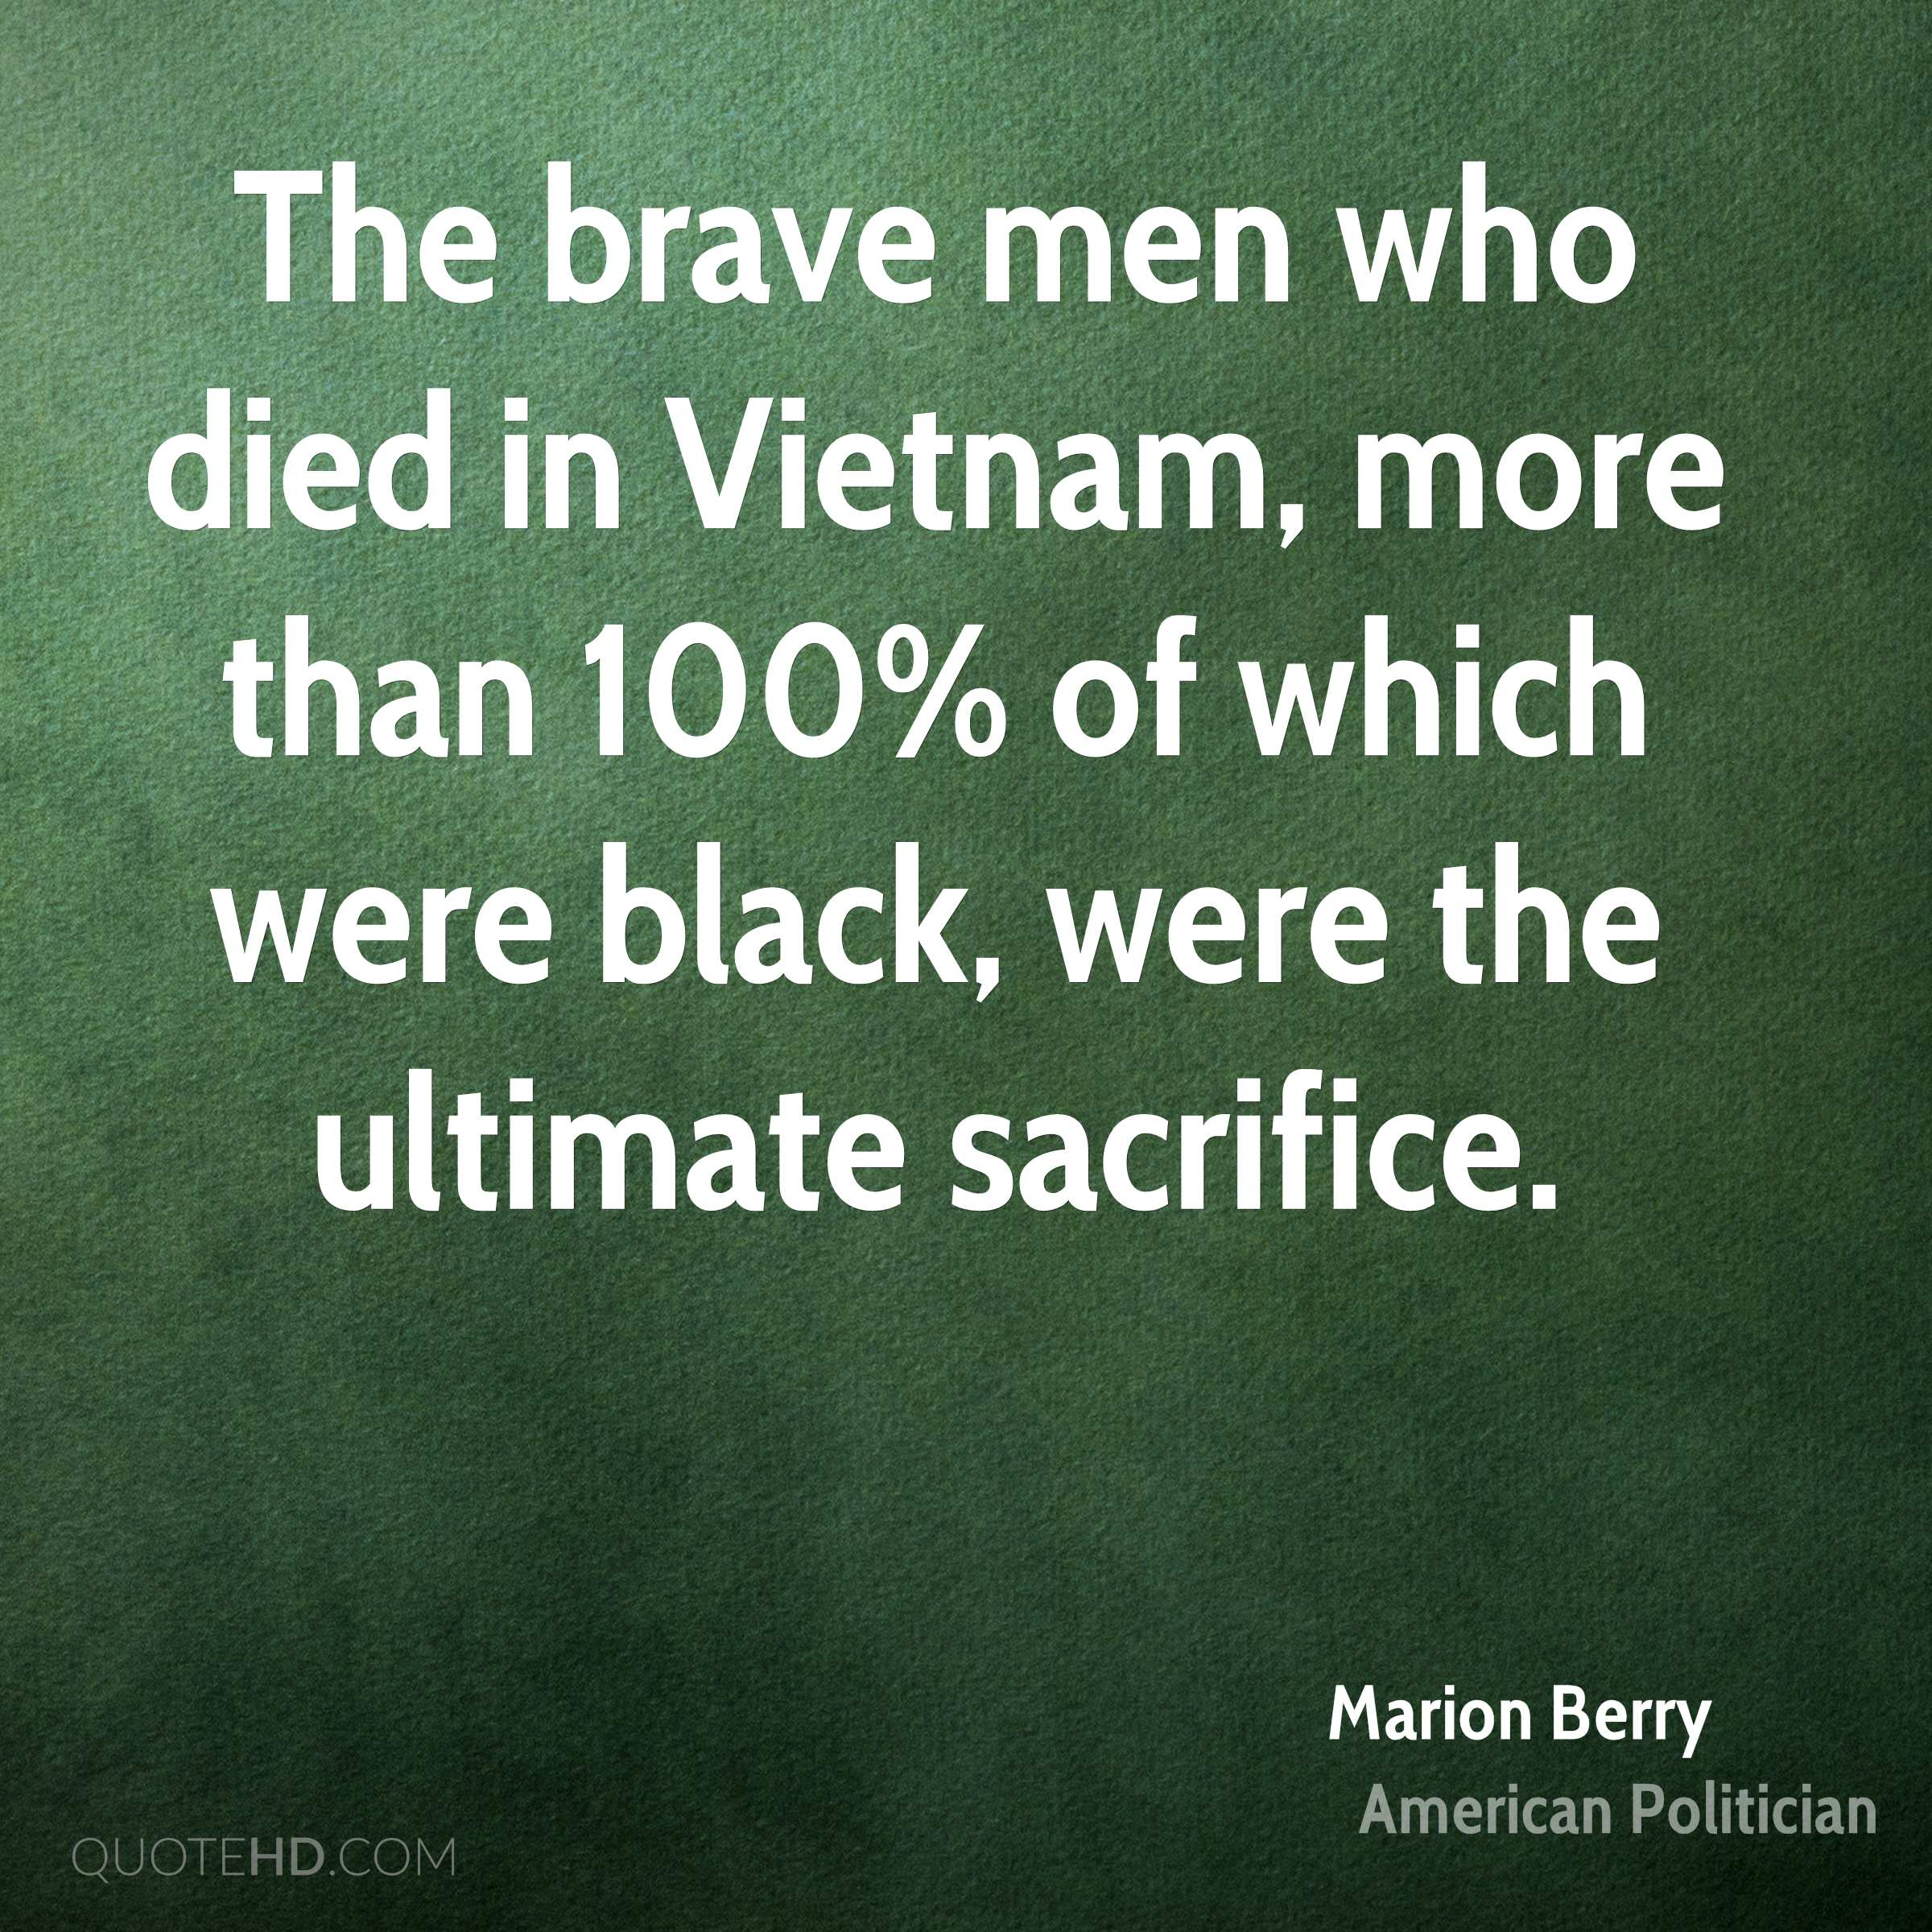 The brave men who died in Vietnam, more than 100% of which were black, were the ultimate sacrifice.